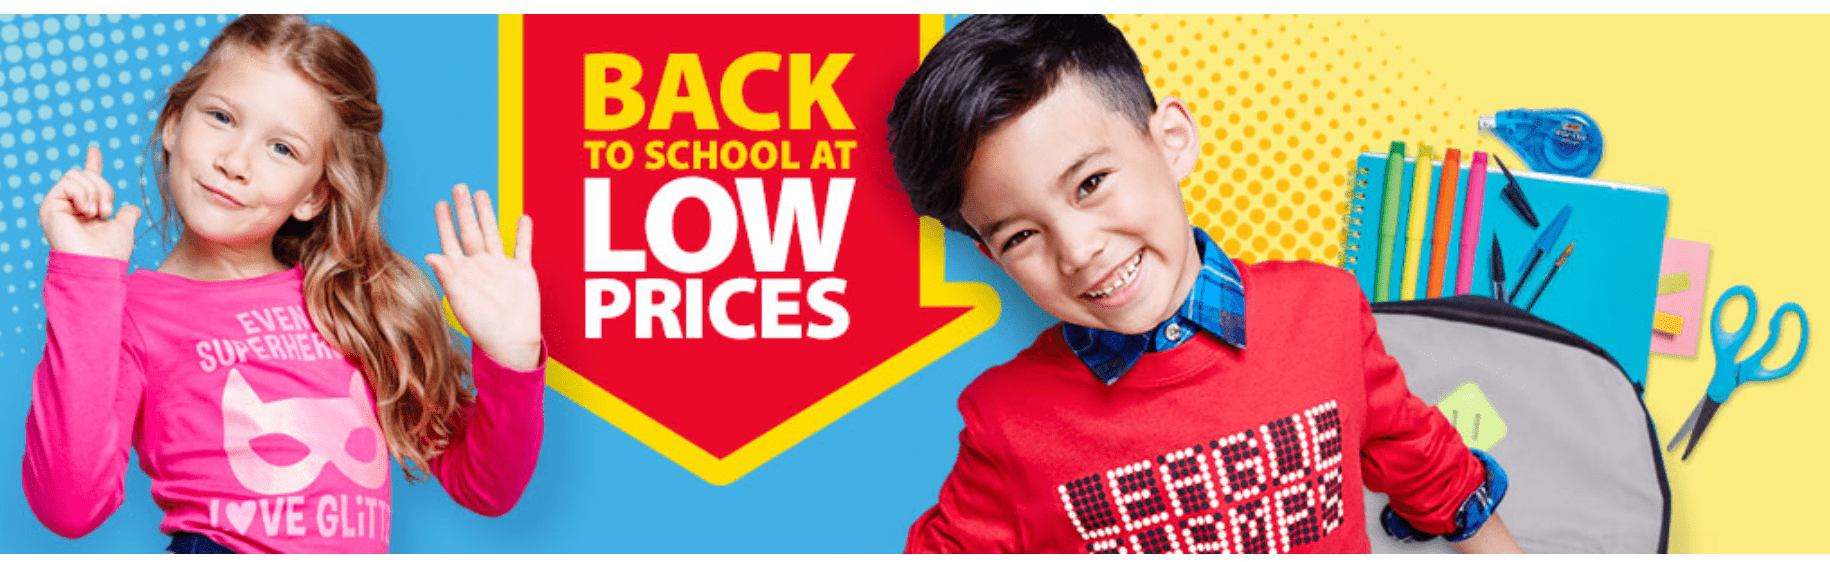 Walmart Canada Back To School Sale Save 150 Off Beats Solo 3 Wireless Headphones Deals Of The Week Canadian Freebies Coupons Deals Bargains Flyers Contests Canada